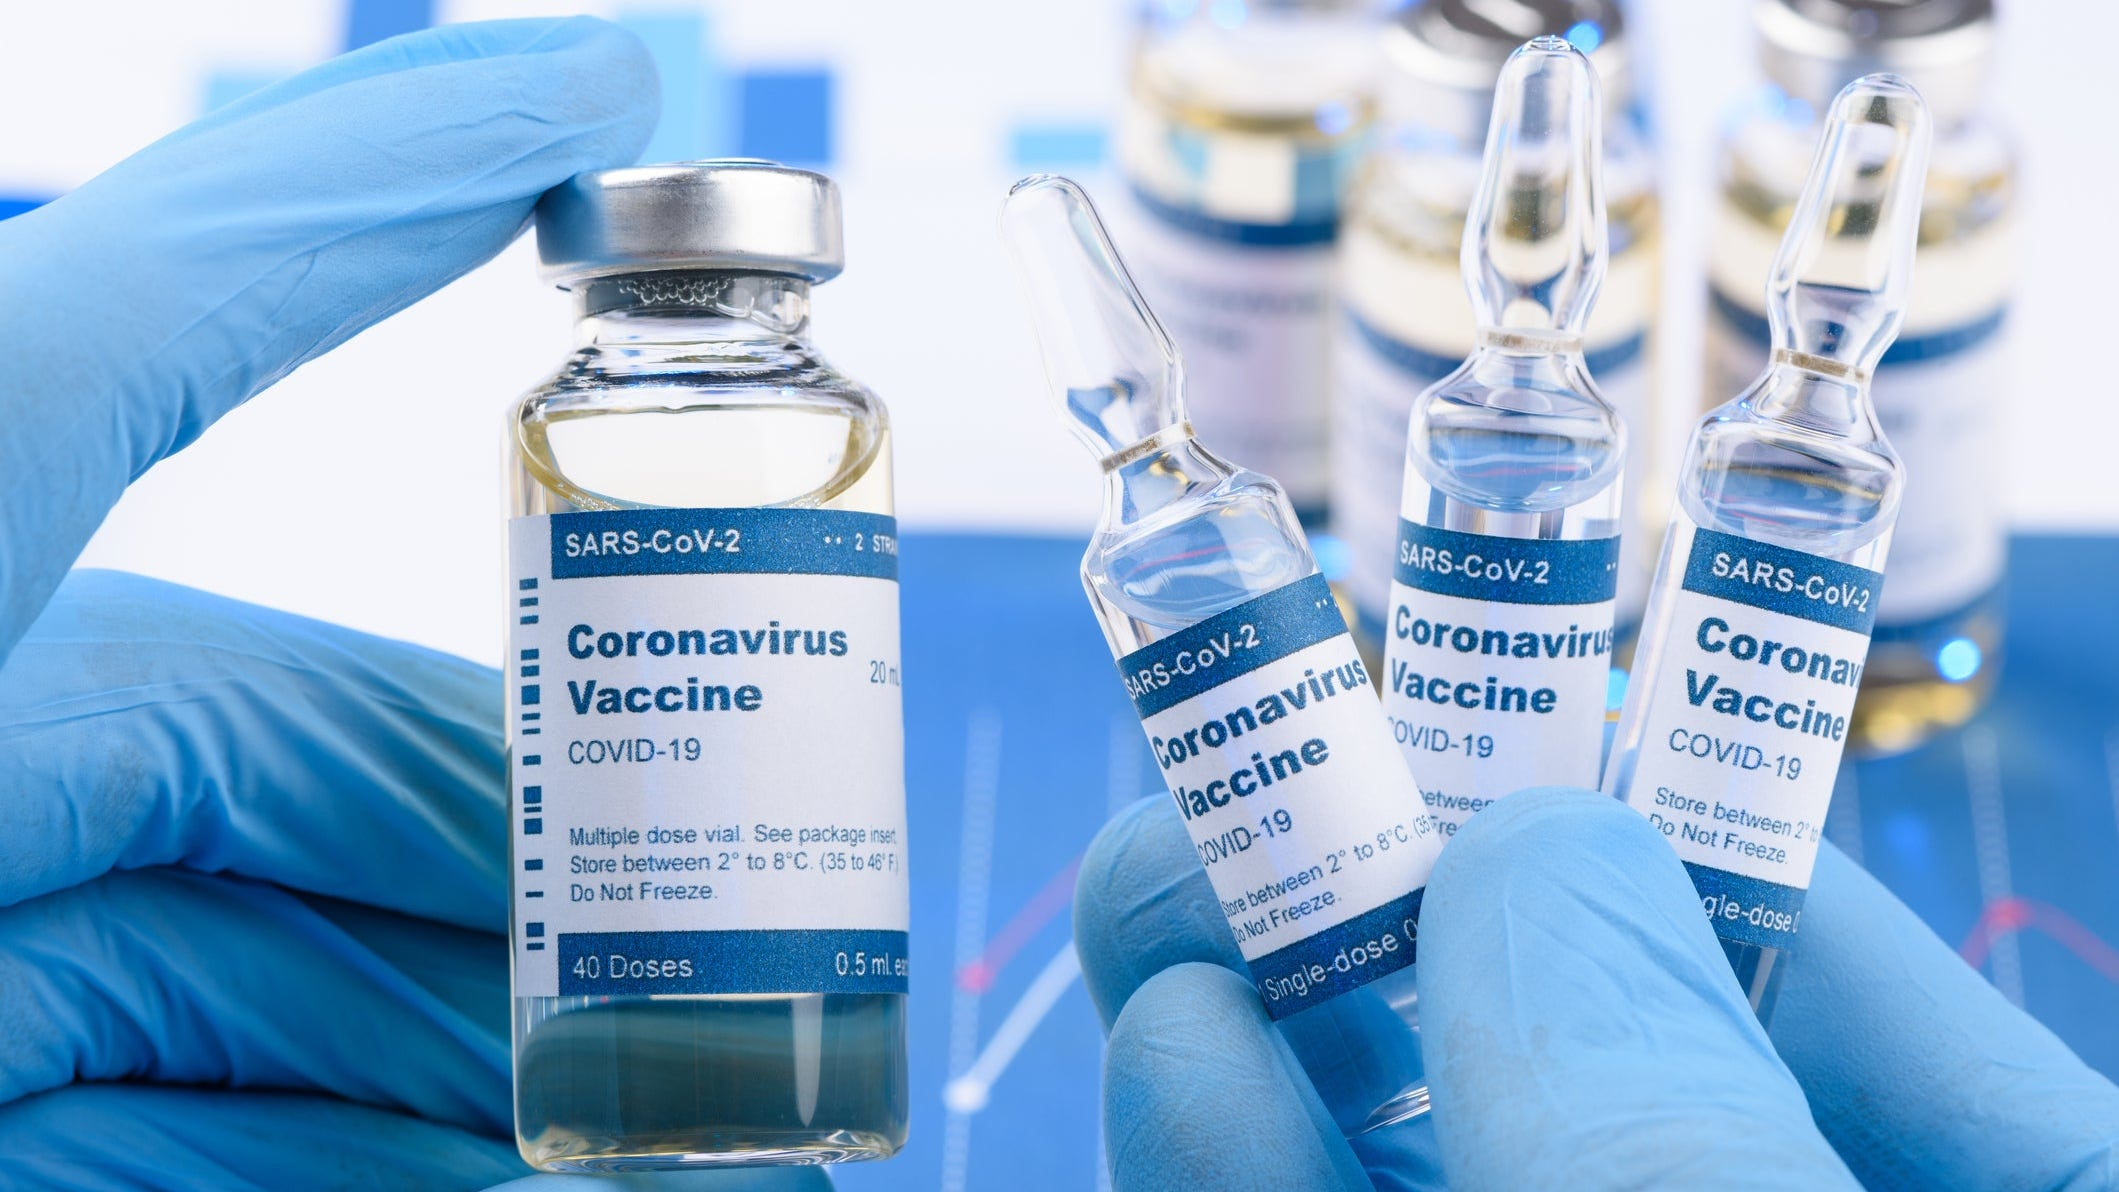 Coronavirus: How to encourage inoculation after a vaccine is developed